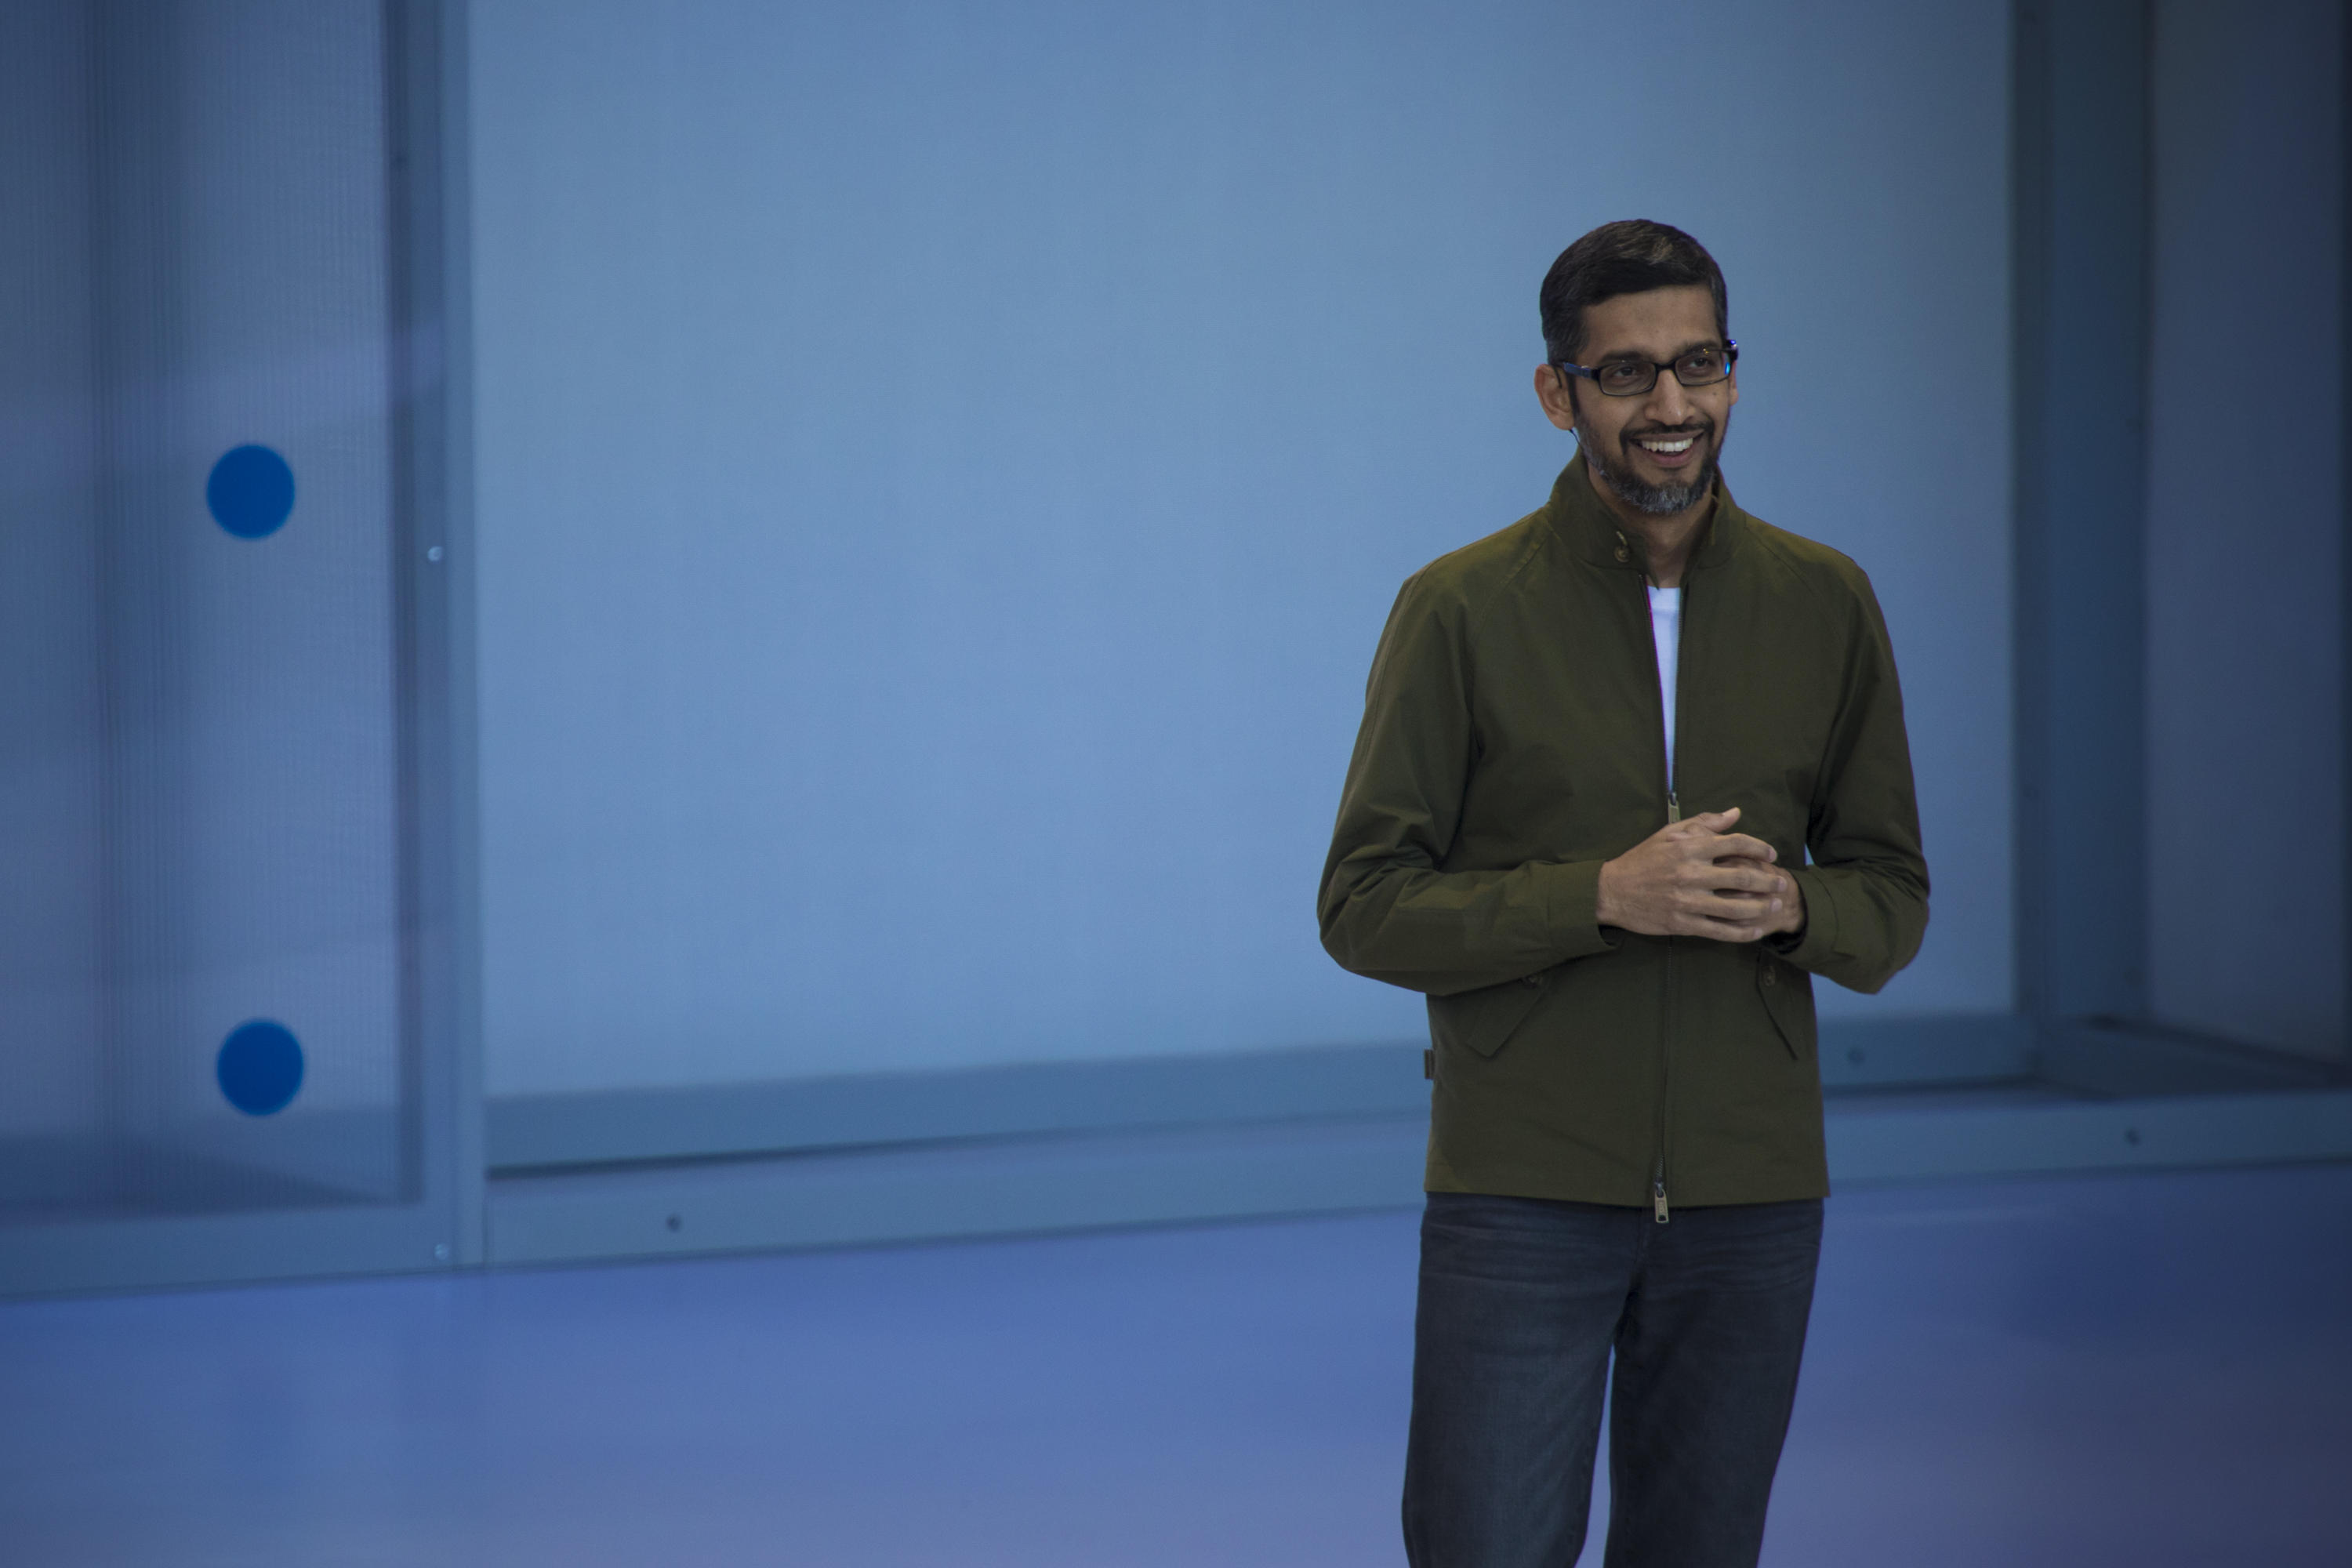 Sundar Pichai in an olive green jacket and jeans, standing onstage at the Shoreline Amphitheater Mountain View.